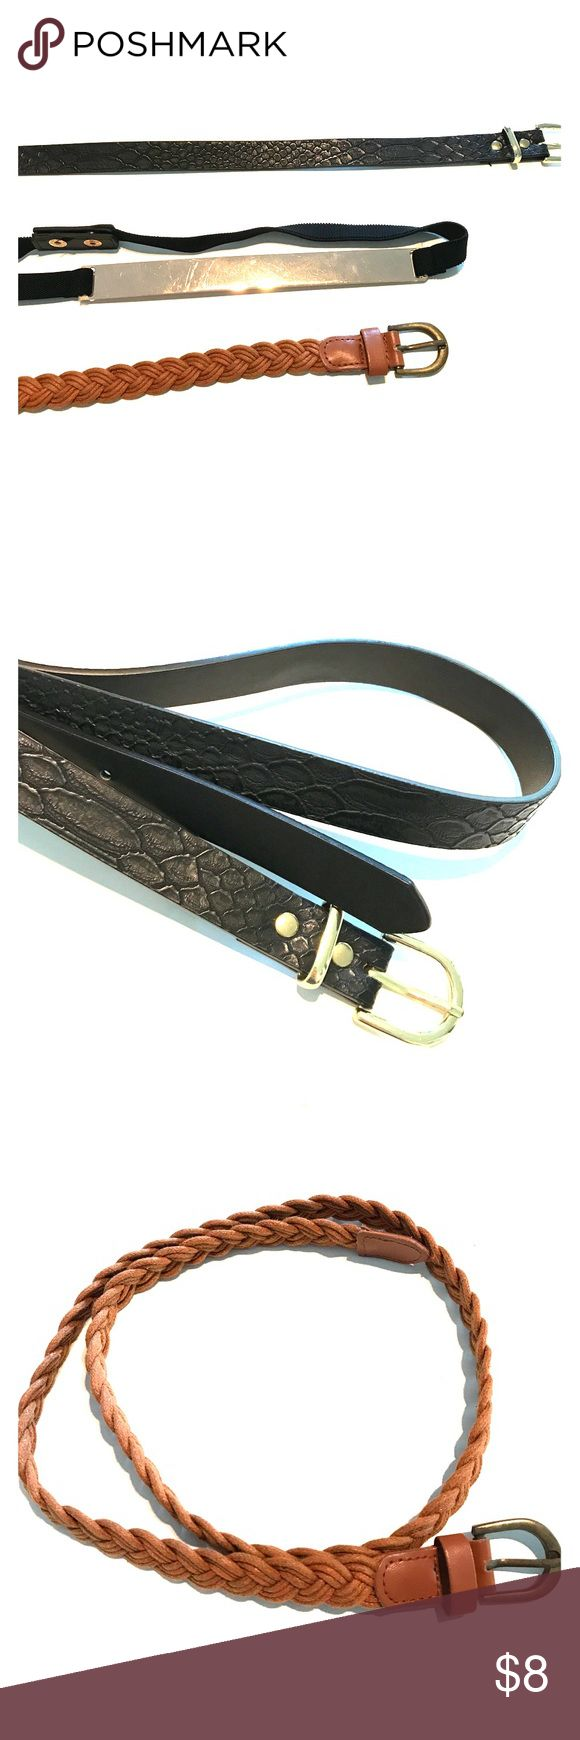 3 Belts 1) Black Faux Leather Belt with Gold (has one extra hole but can barely be seen) 2) Braided Brown Belt 3) Button Snap Fashion Belt with gold plate...looks super cute with dresses or jumpsuit for an hour glass figure look Accessories Belts